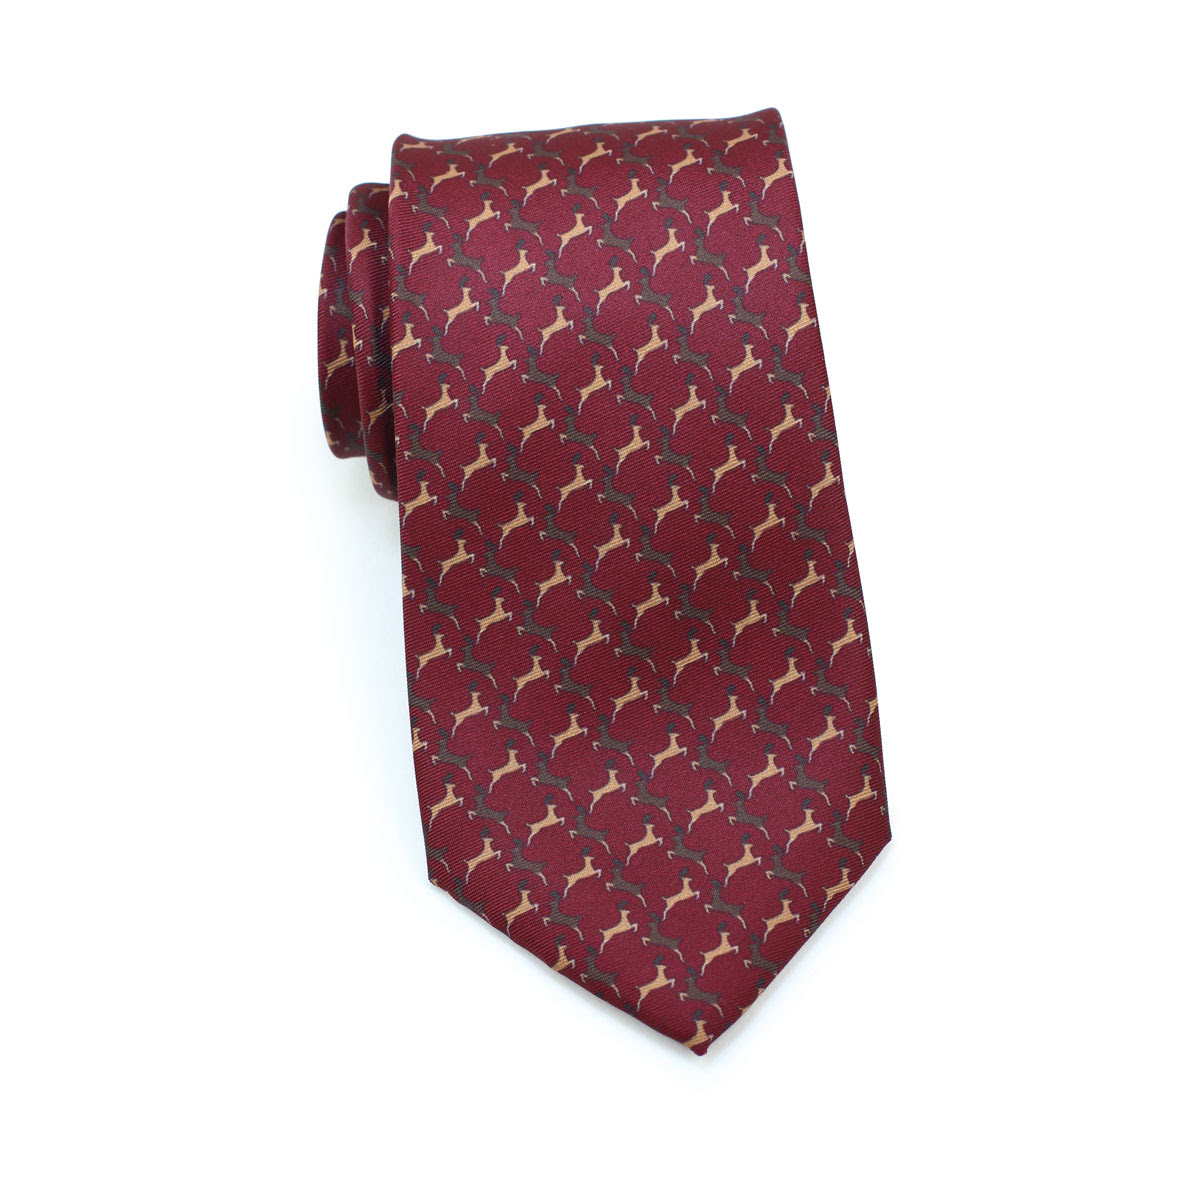 Christmas neck tie in cherry red